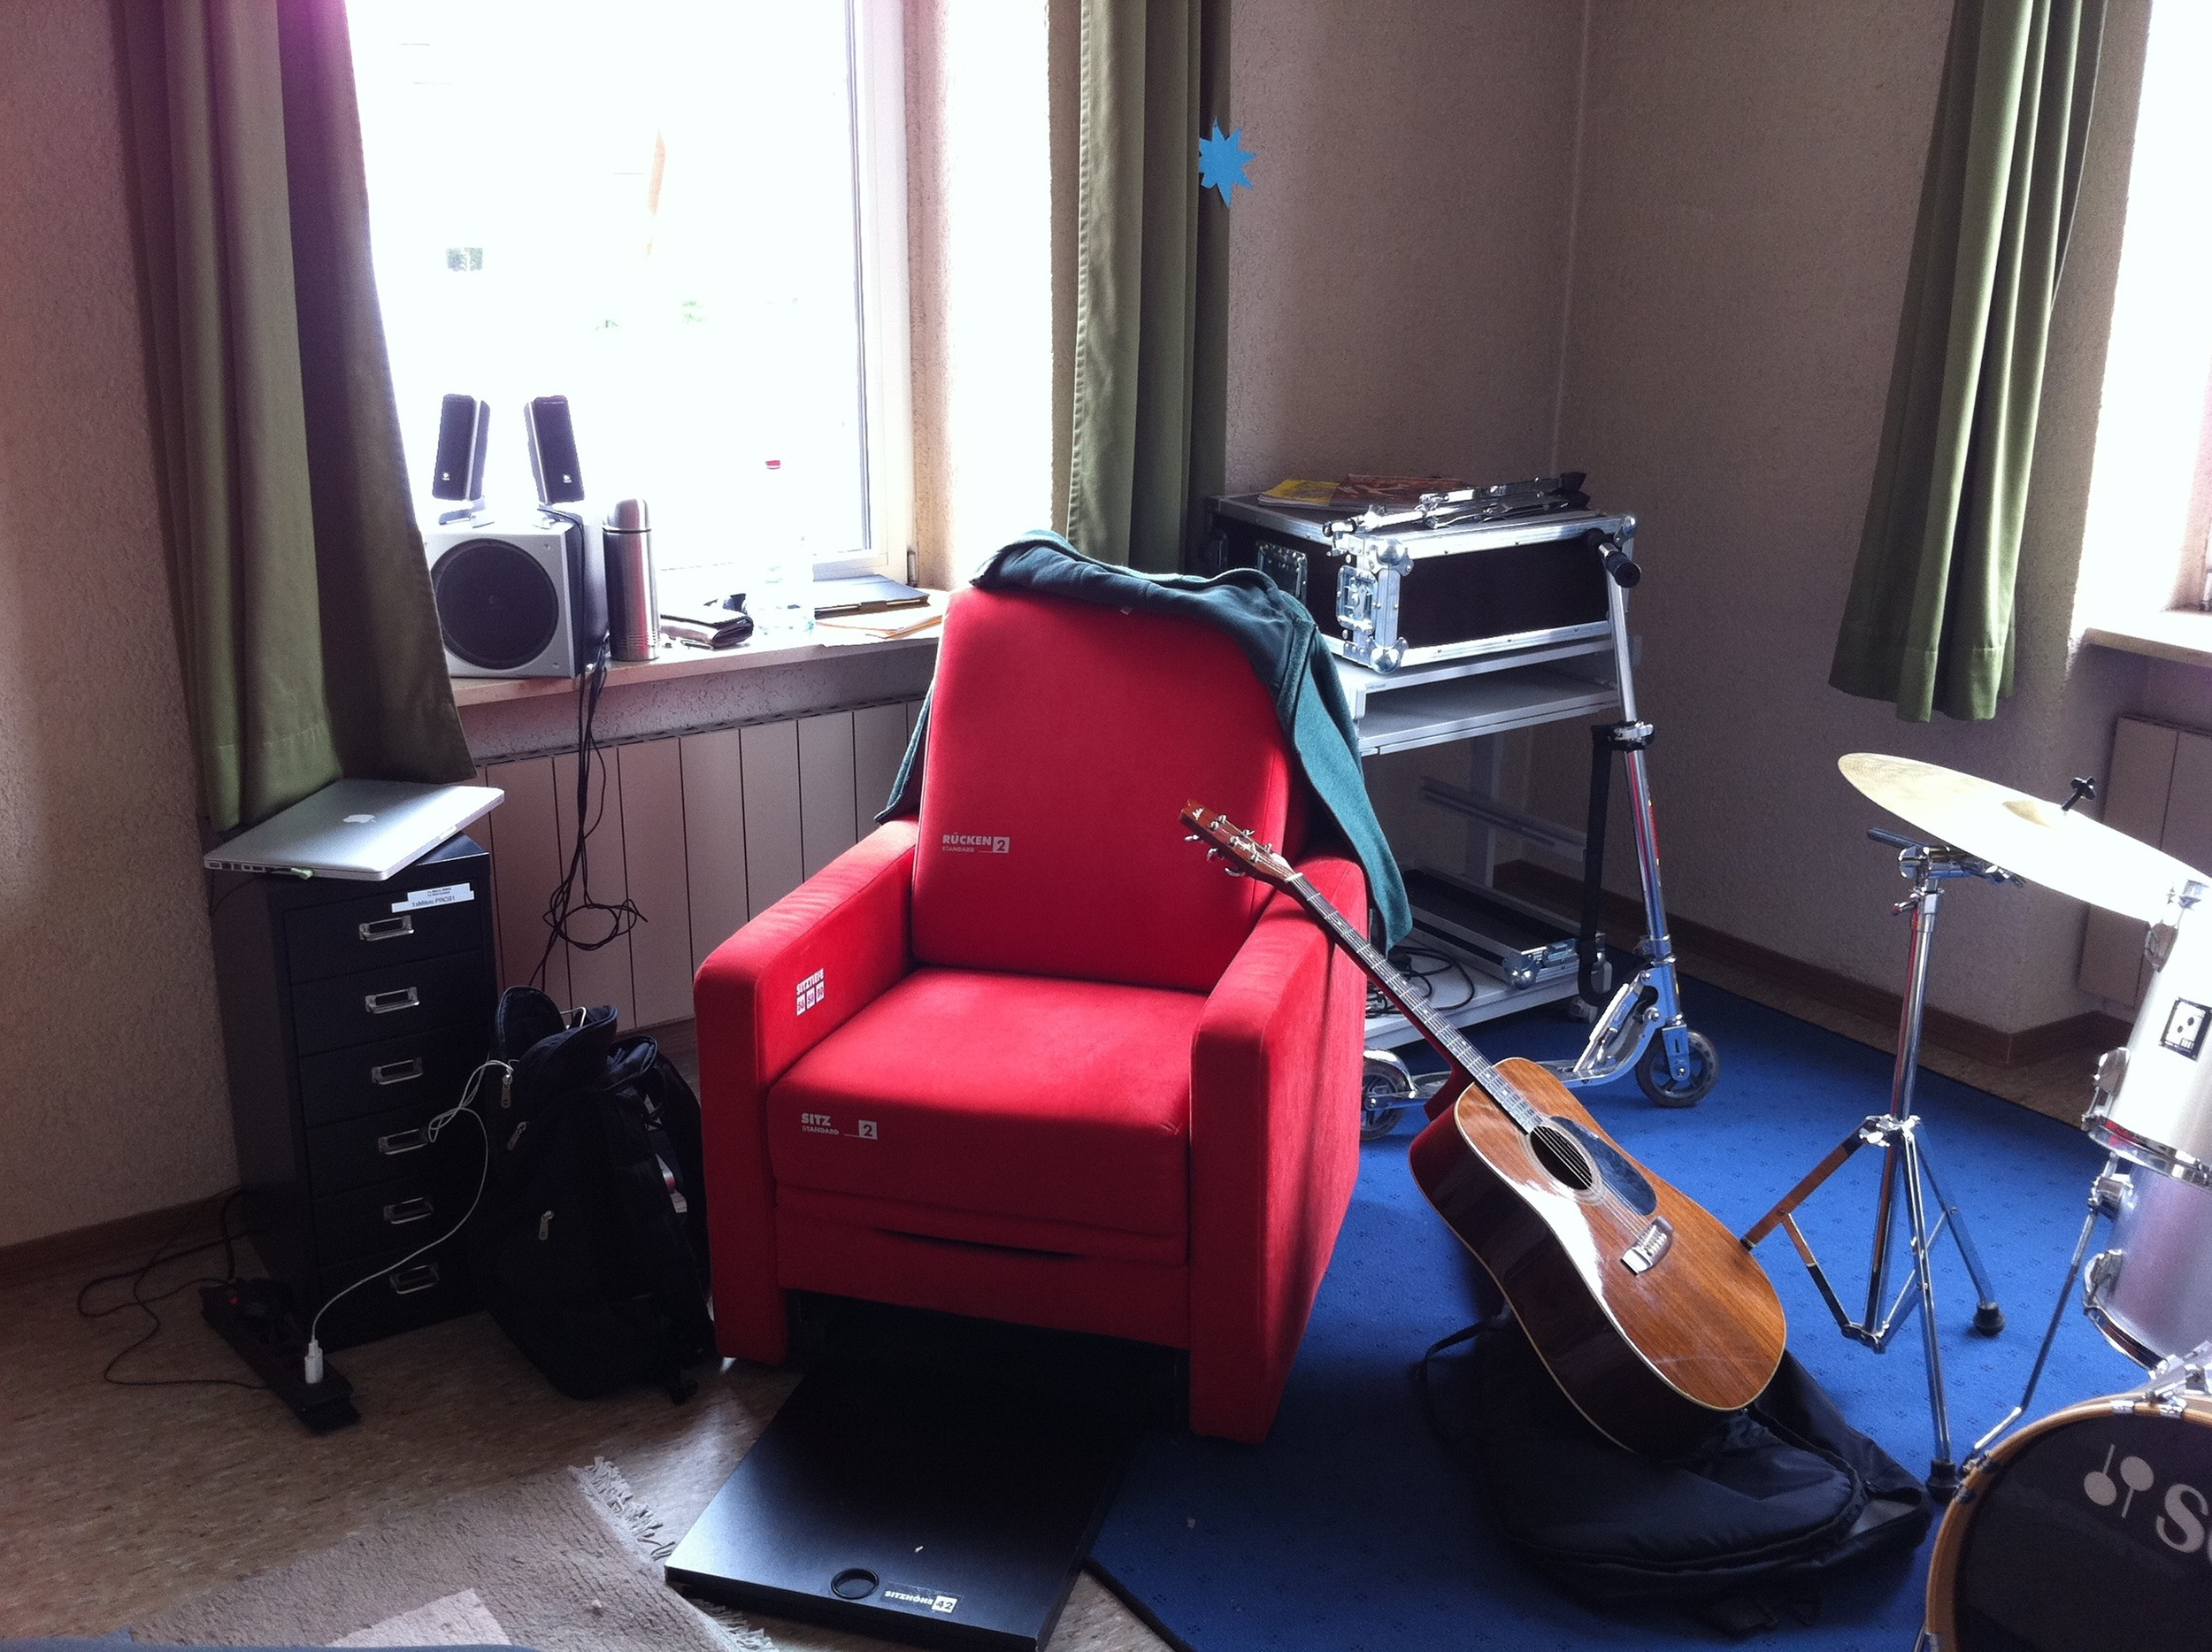 My working space at a music school in Germany